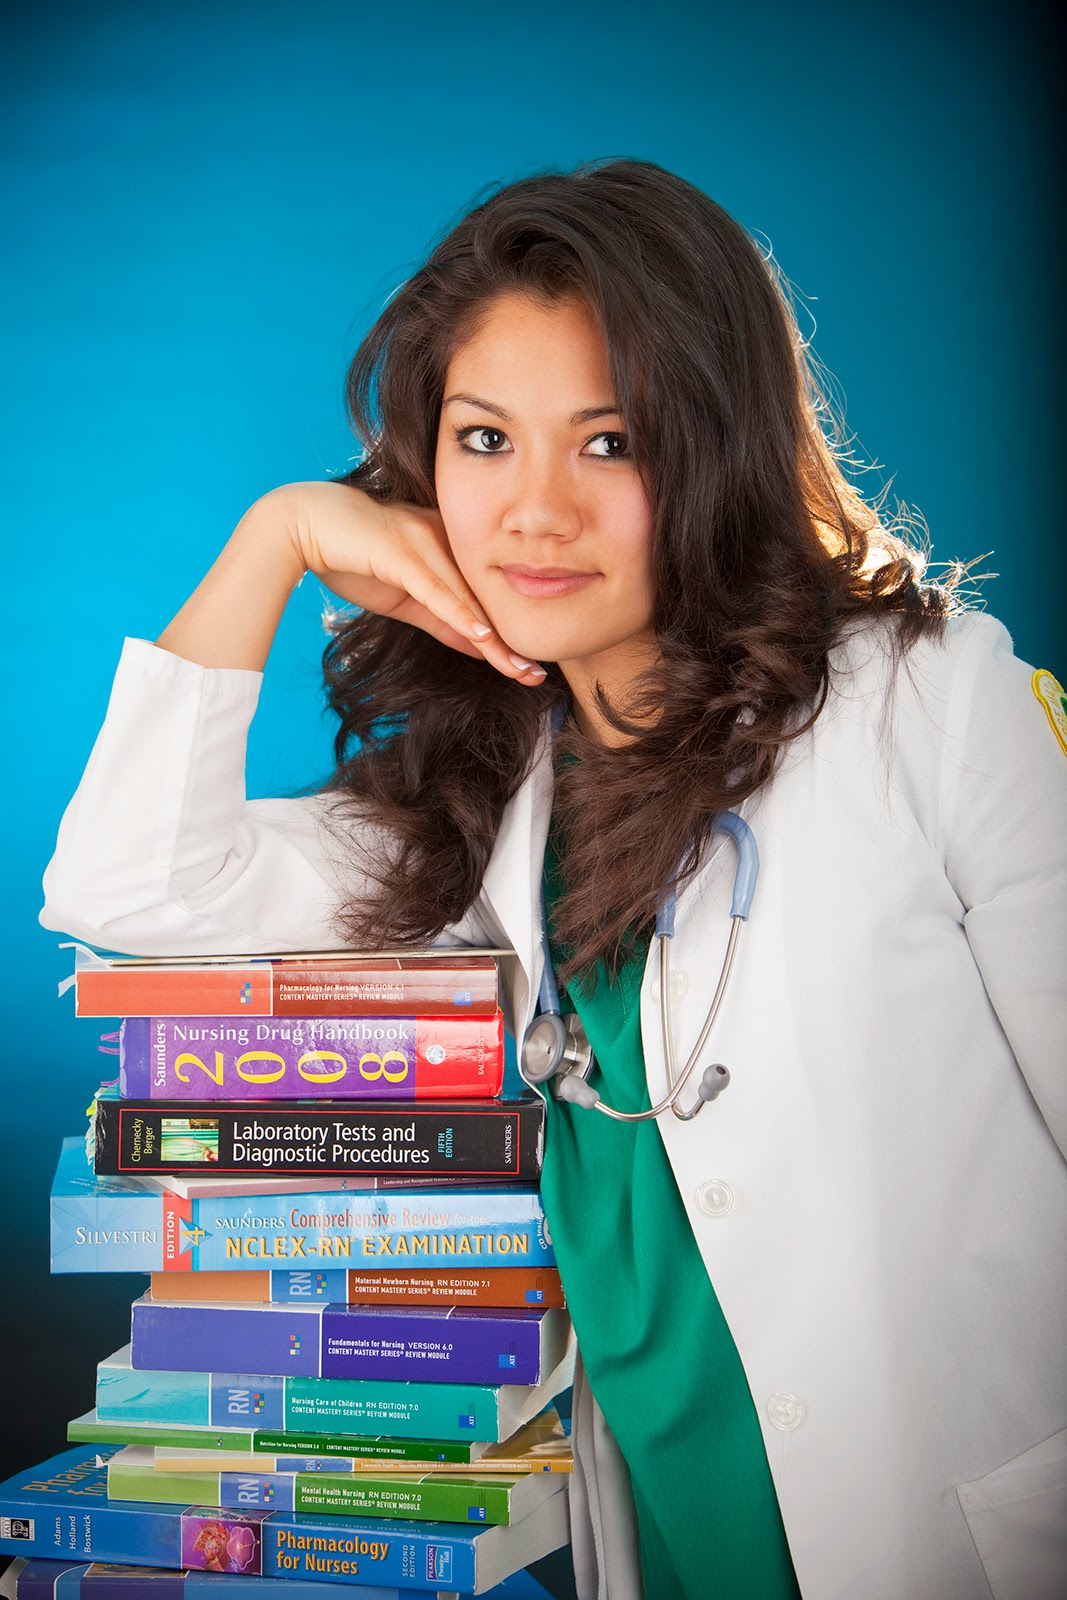 College books stacked up with nurse